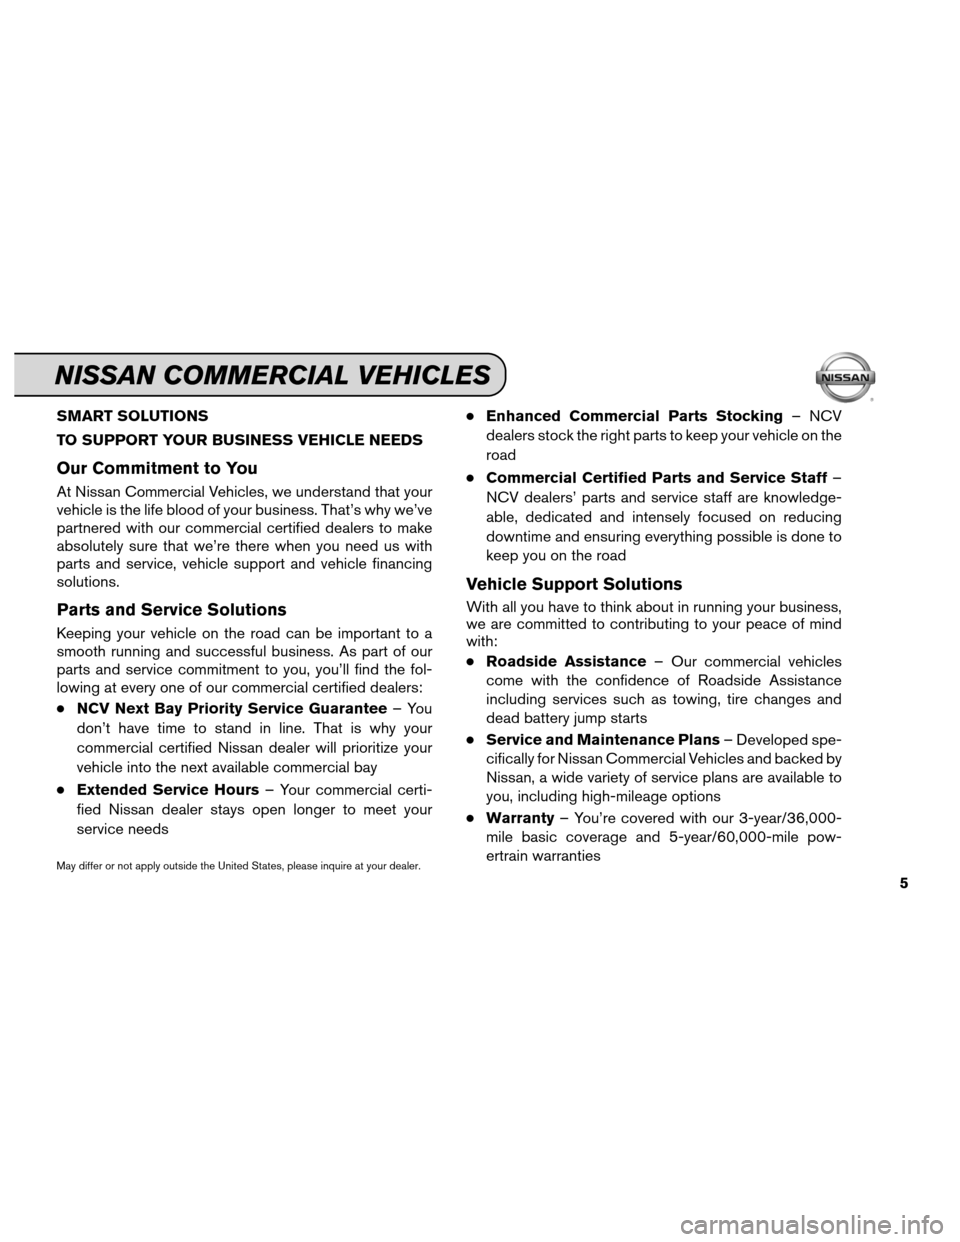 NISSAN VERSA 2012 1.G Service And Maintenance Guide SMART SOLUTIONS TO SUPPORT YOUR BUSINESS VEHICLE NEEDS Our Commitment to You At Nissan Commercial Vehicles, we understand that your vehicle is the life blood of your business. That's why we've par